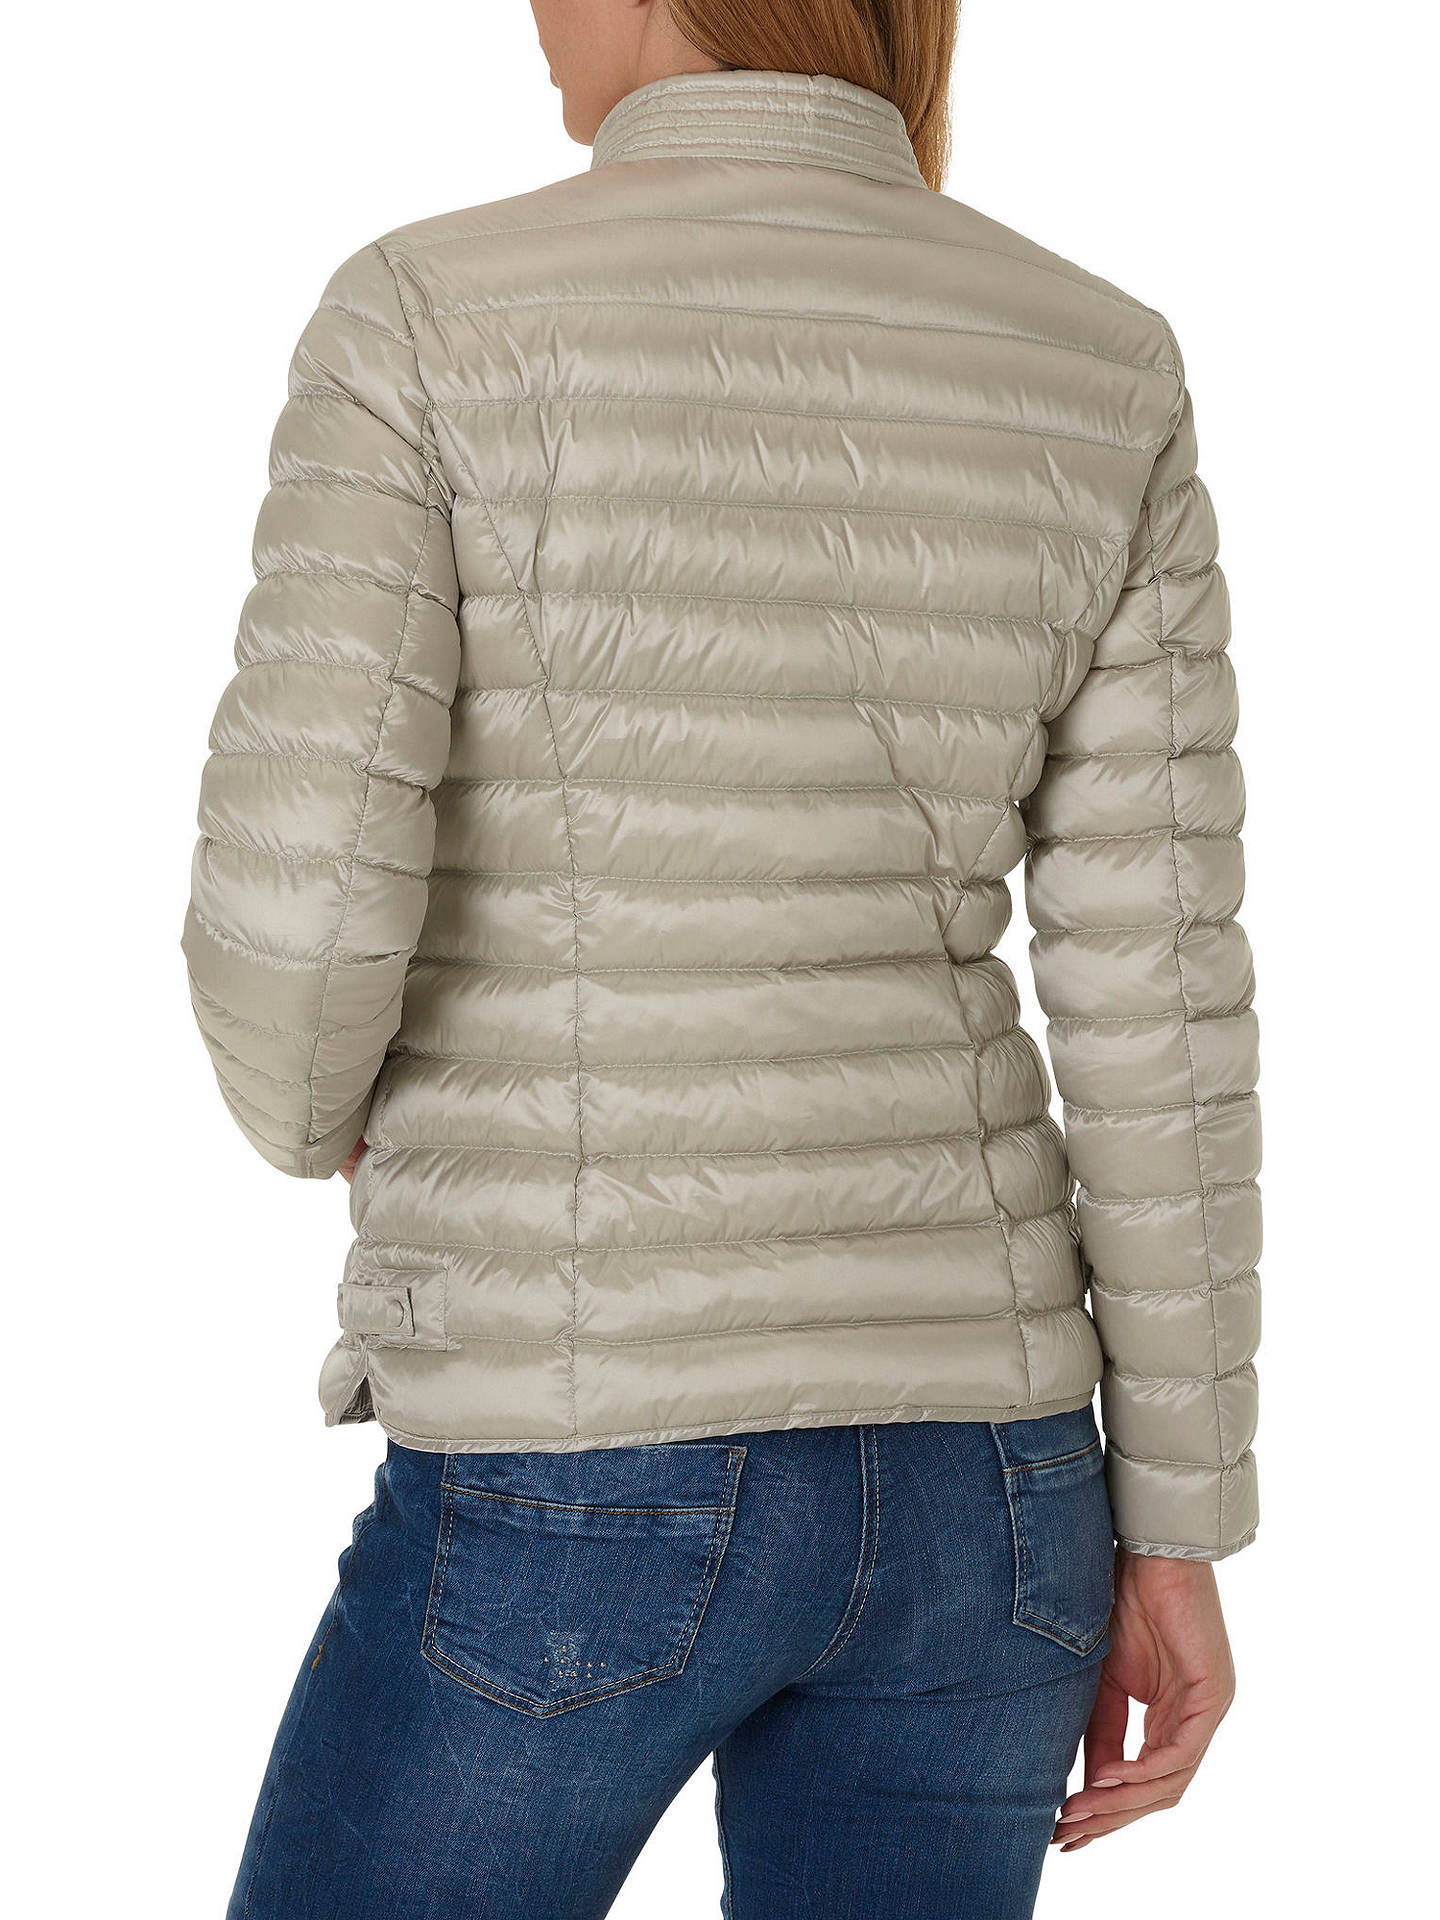 BuyBetty & Co. Wadded Jacket, Beige, 12 Online at johnlewis.com